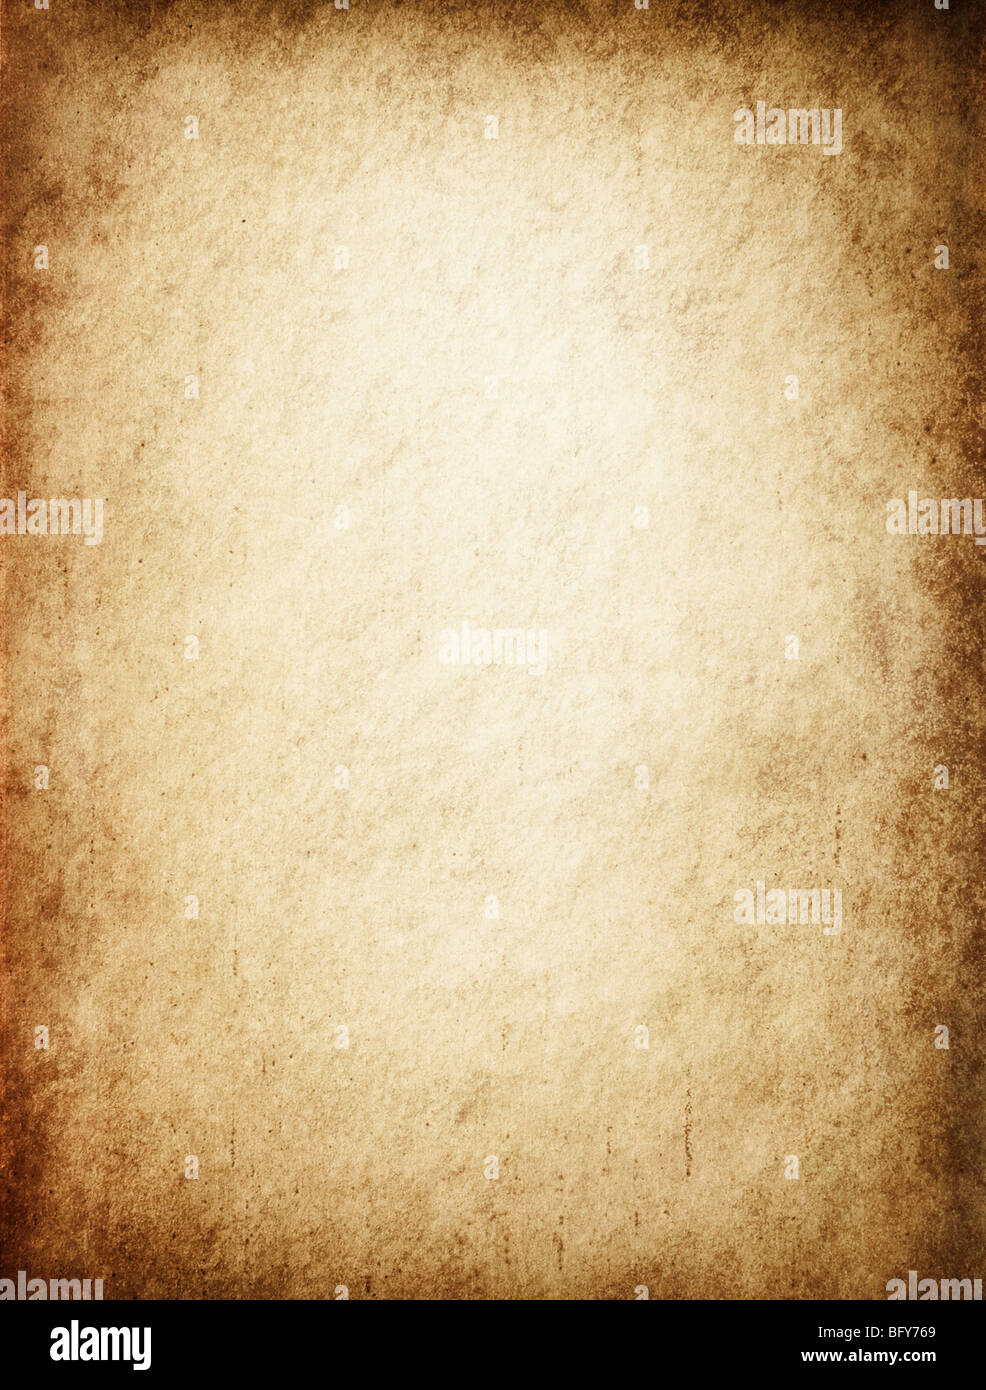 Antique yellowish parchment paper grungy background texture - Stock Image